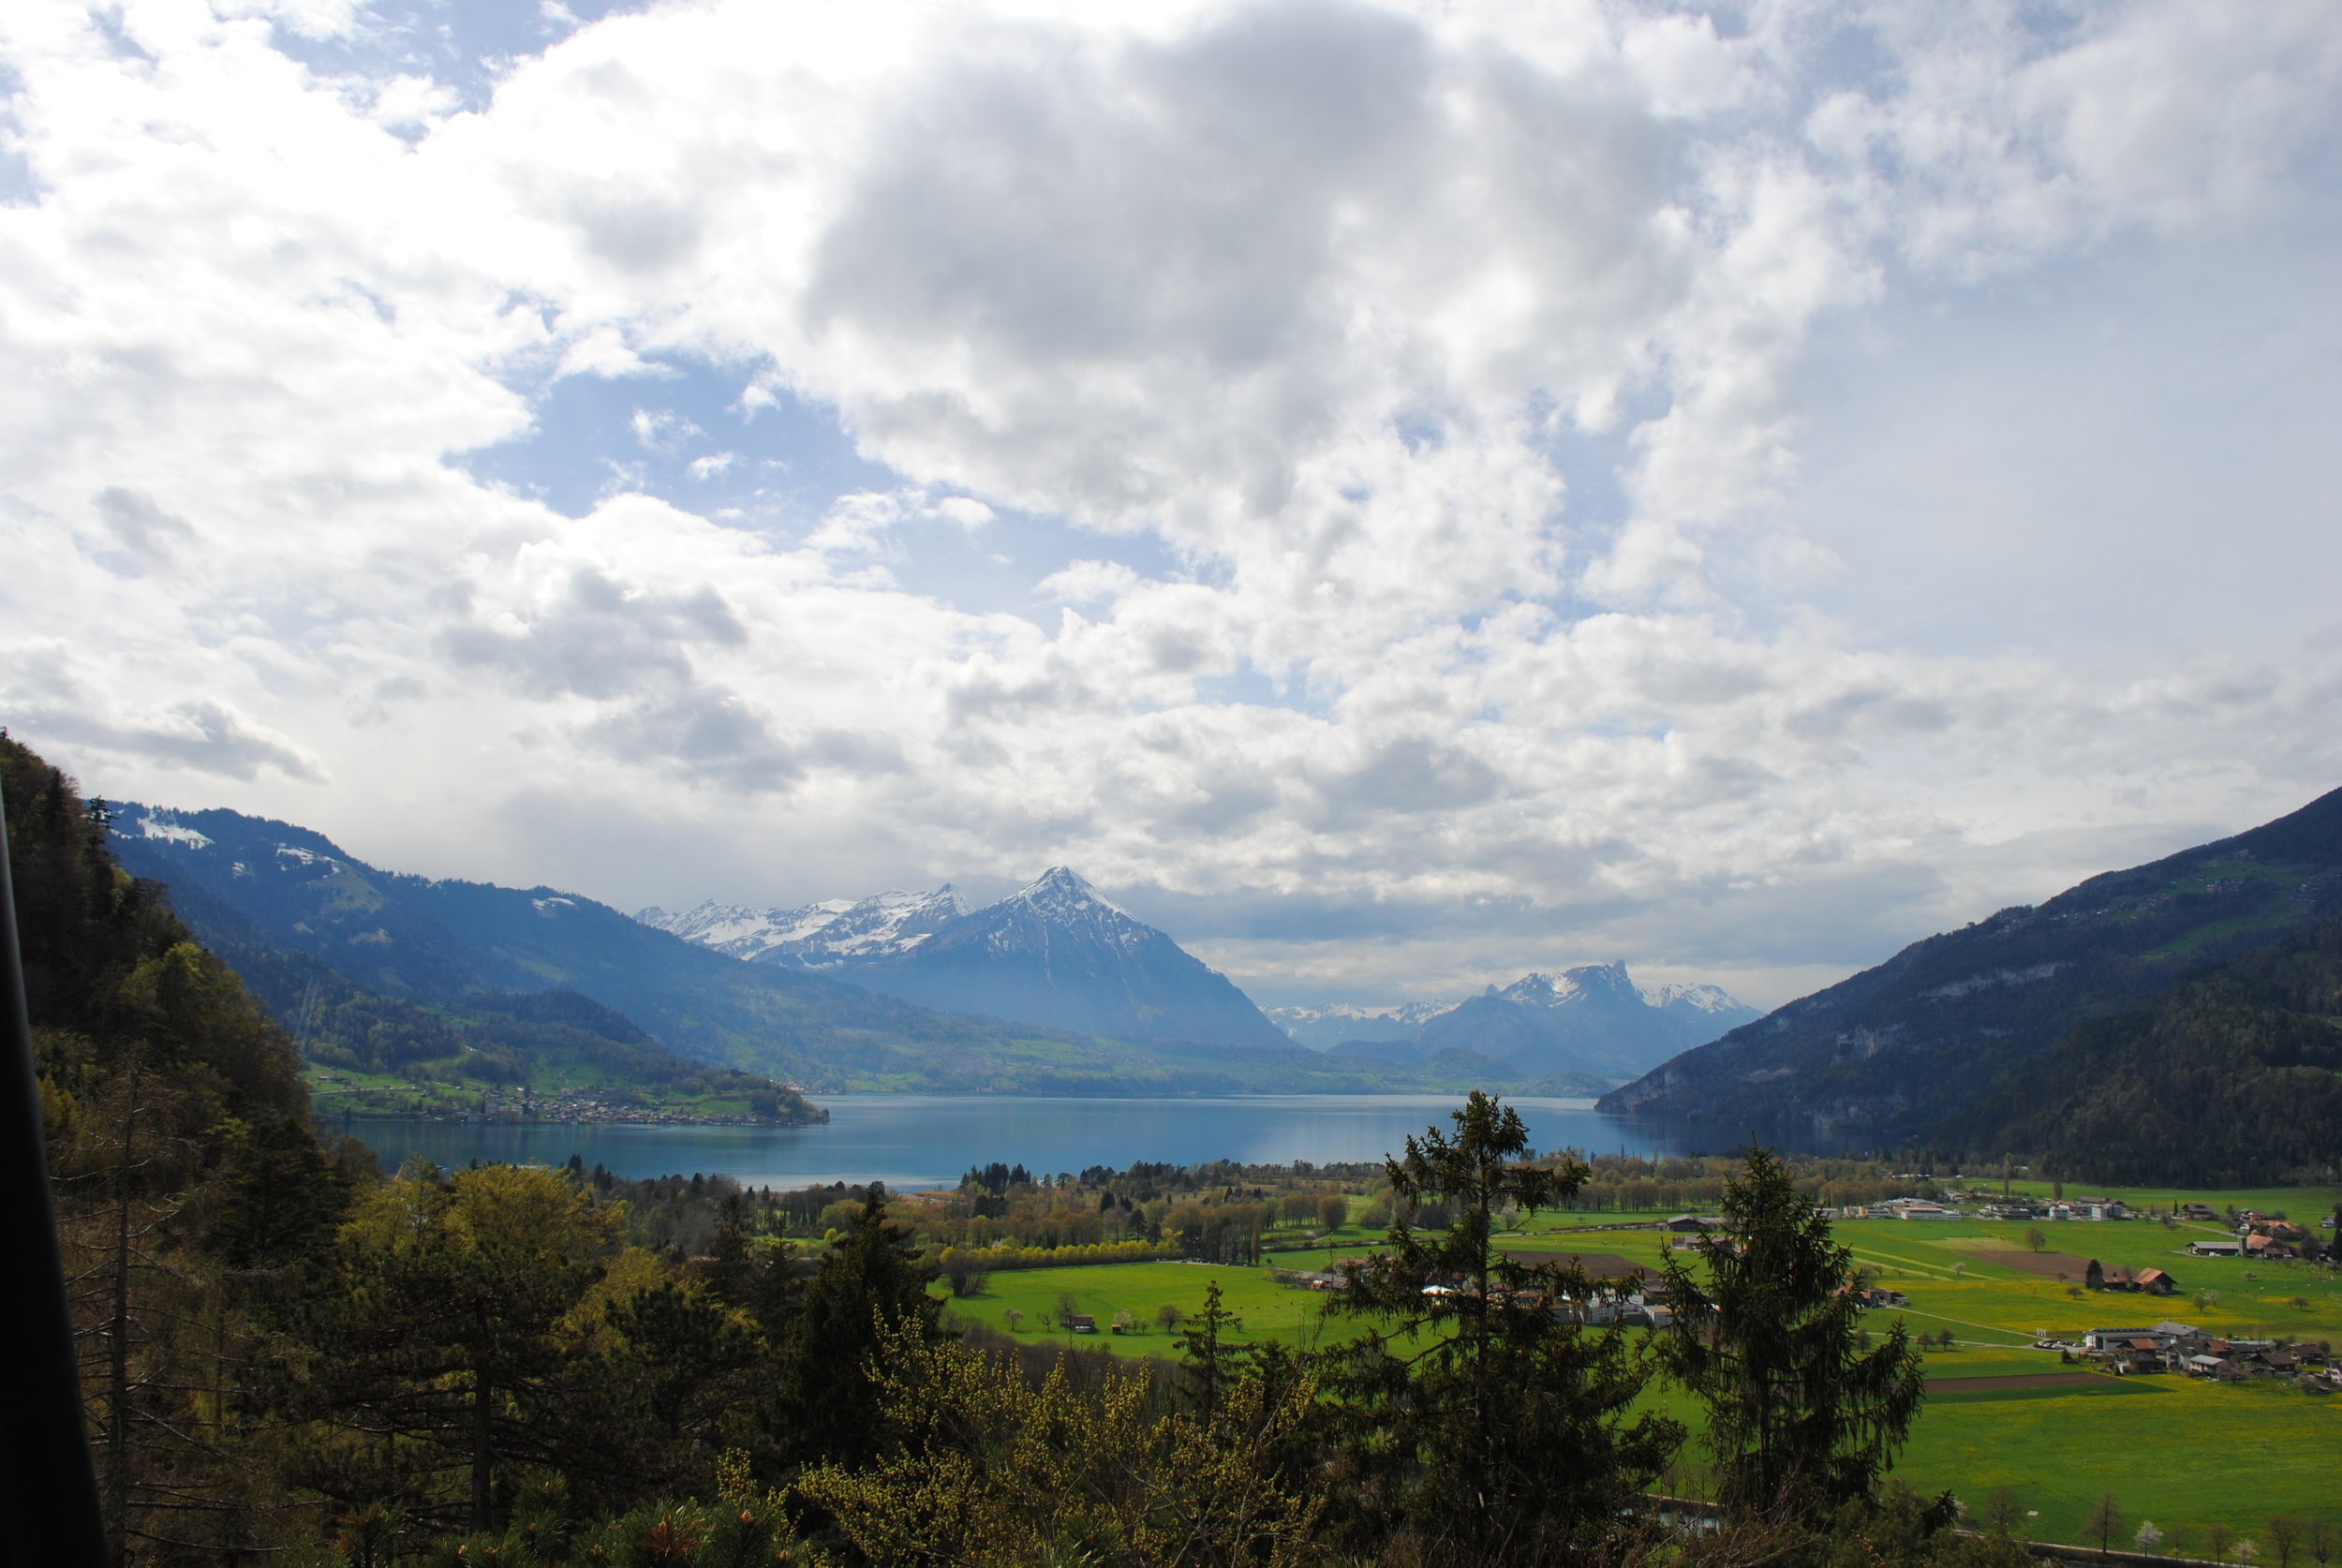 Views of Interlaken from the vantage point